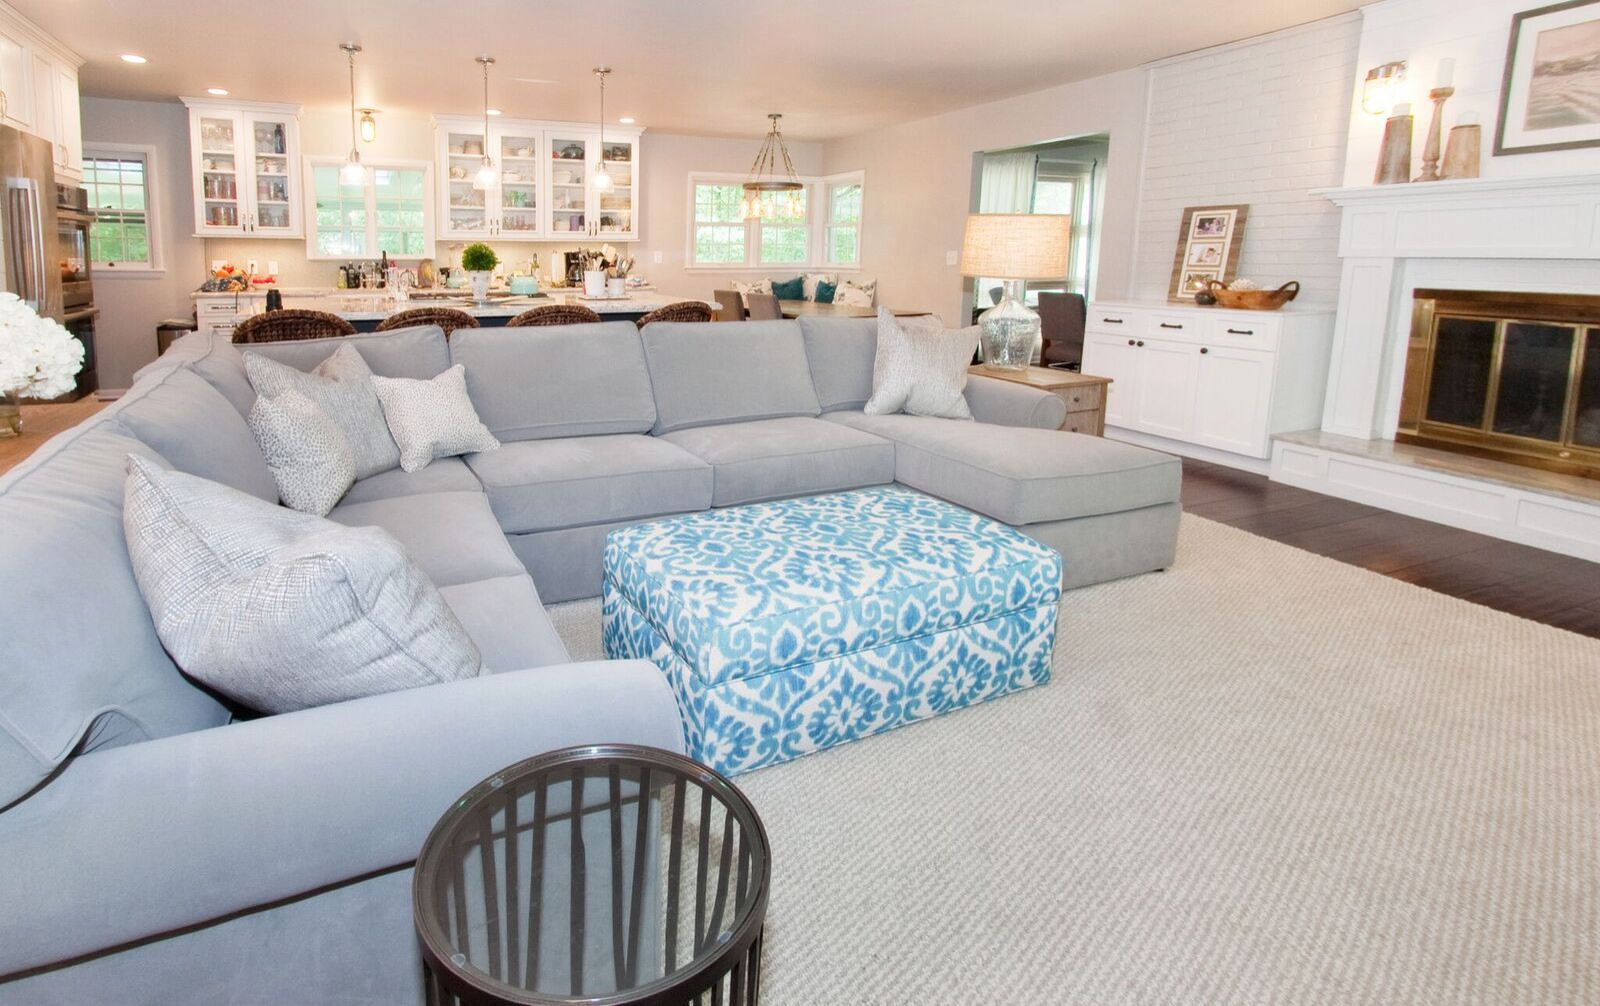 Eclectic cozy open concept kitchen-living room in Kettering